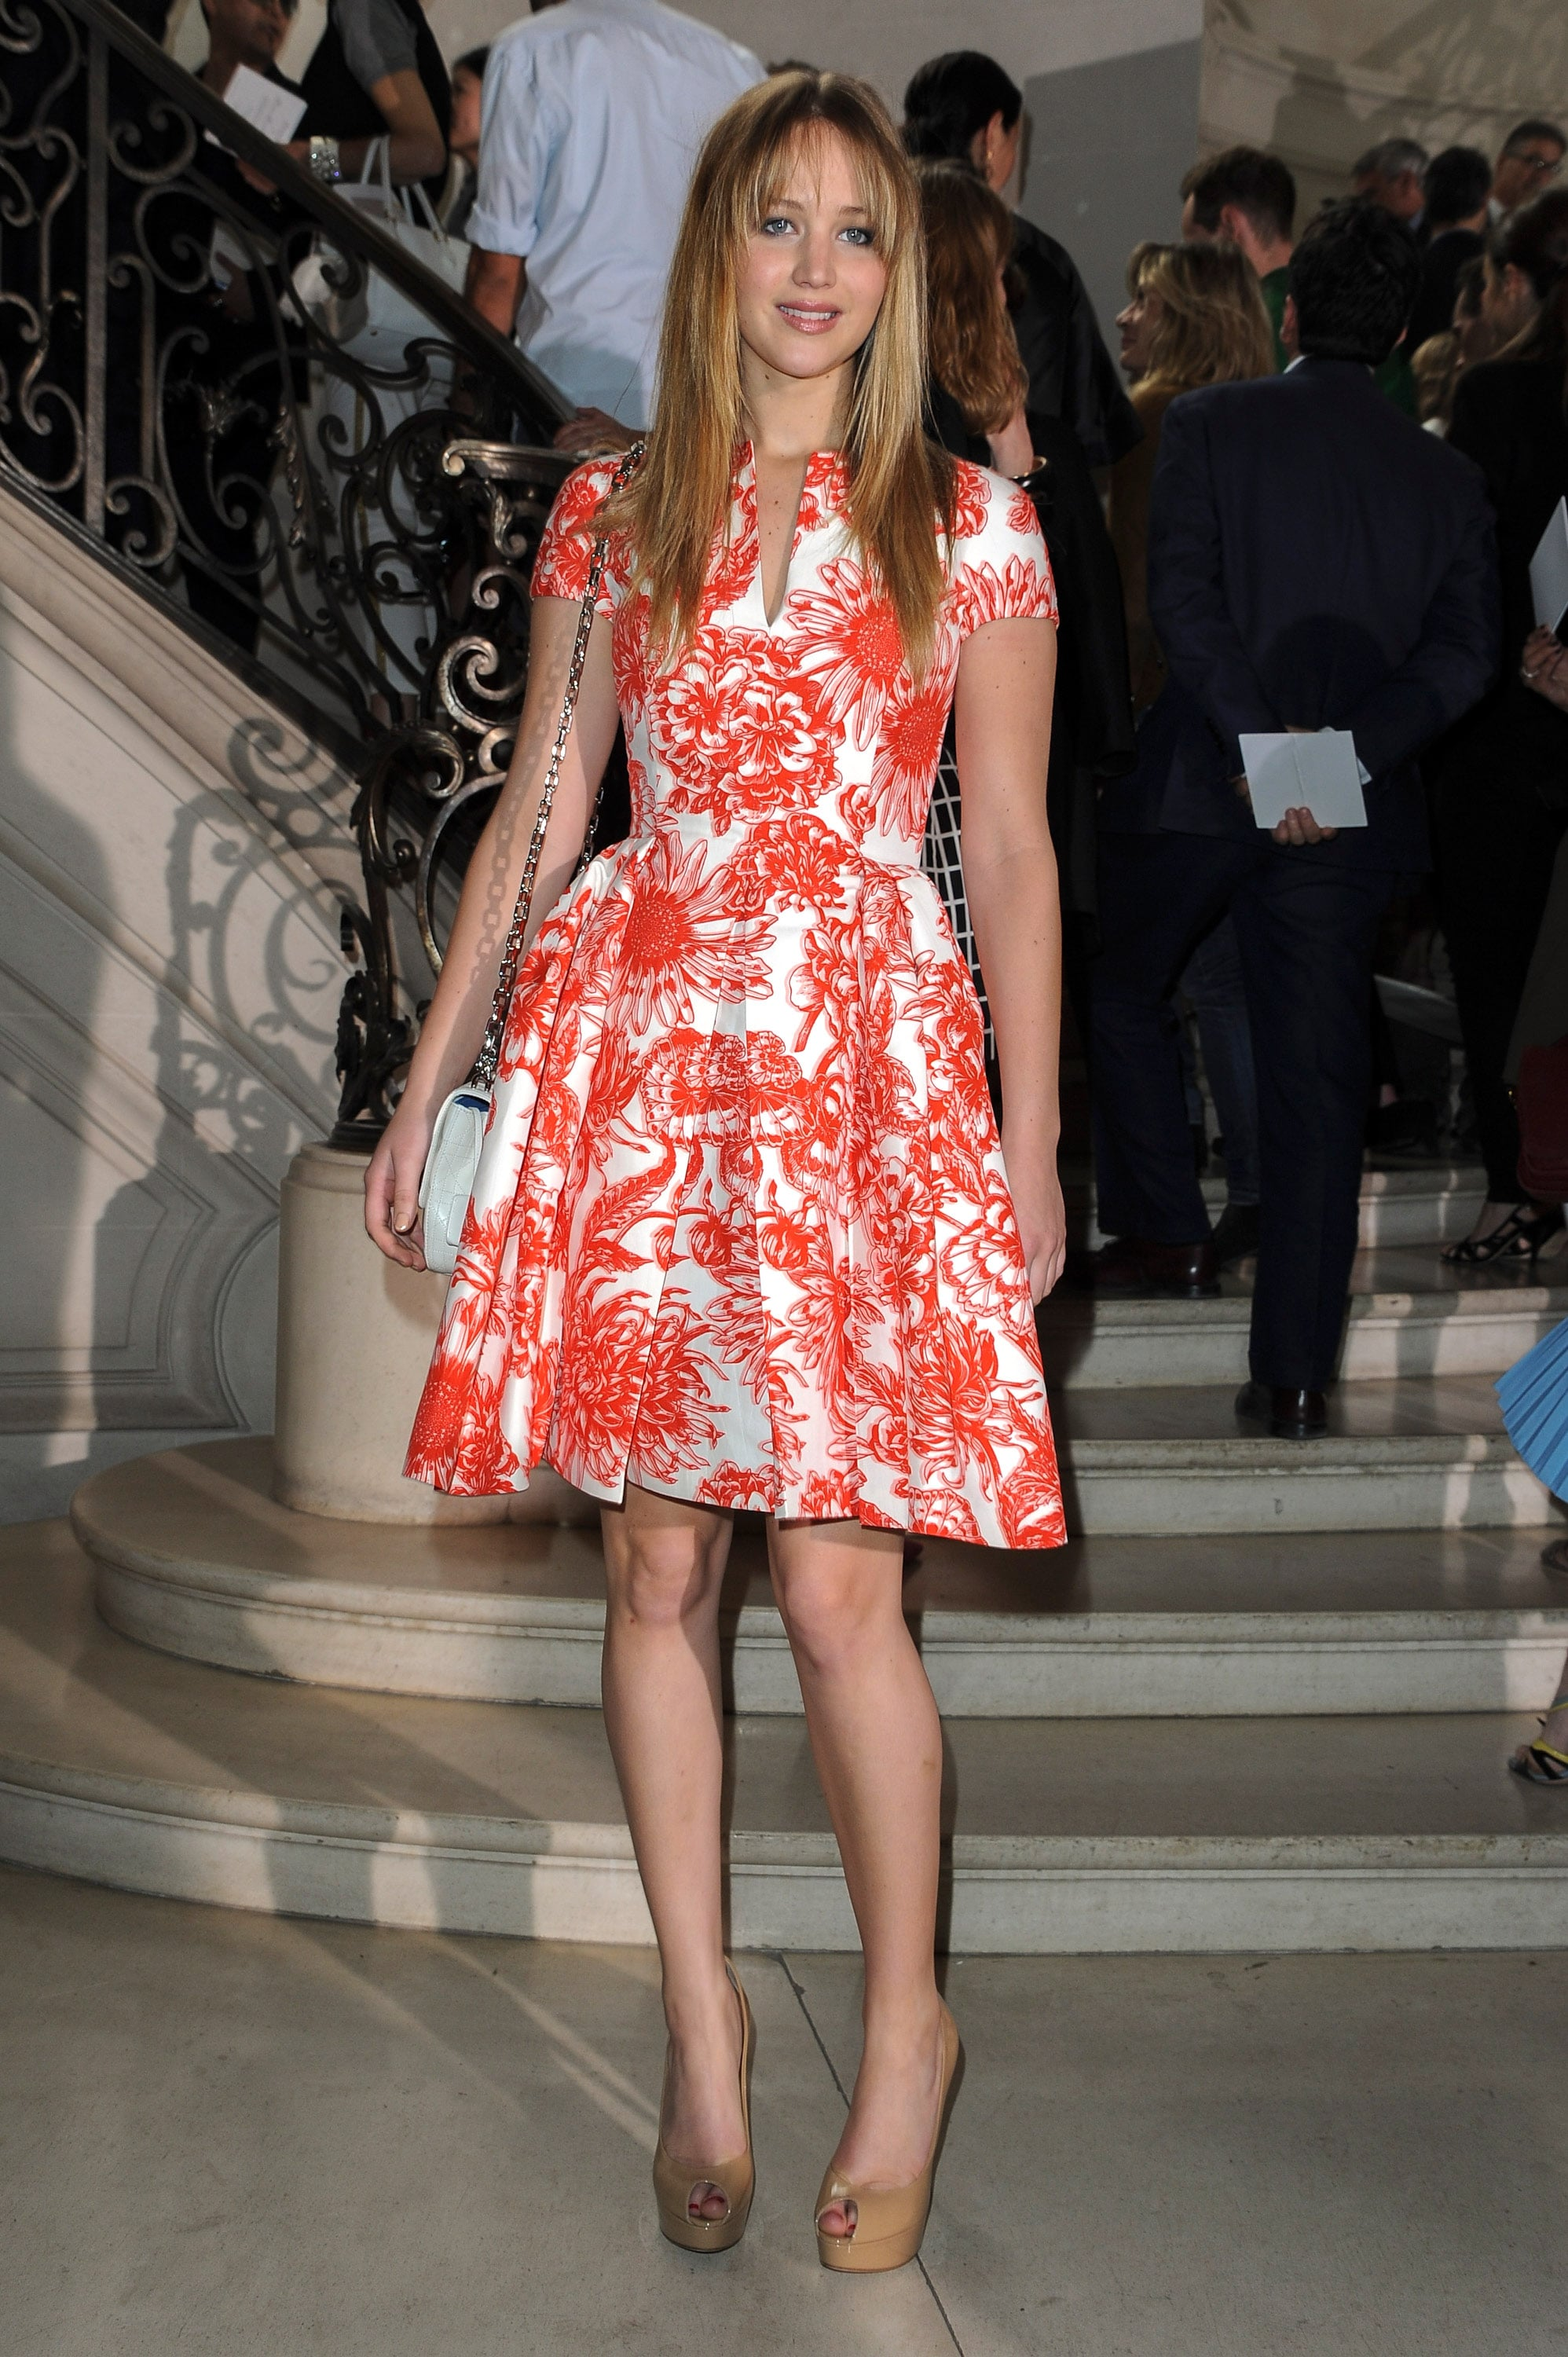 This is what happens when ladylike meets cool-girl chic. How fabulous is the red pattern on this cocktail dress she wore to the Dior Couture Fall 2012 show?